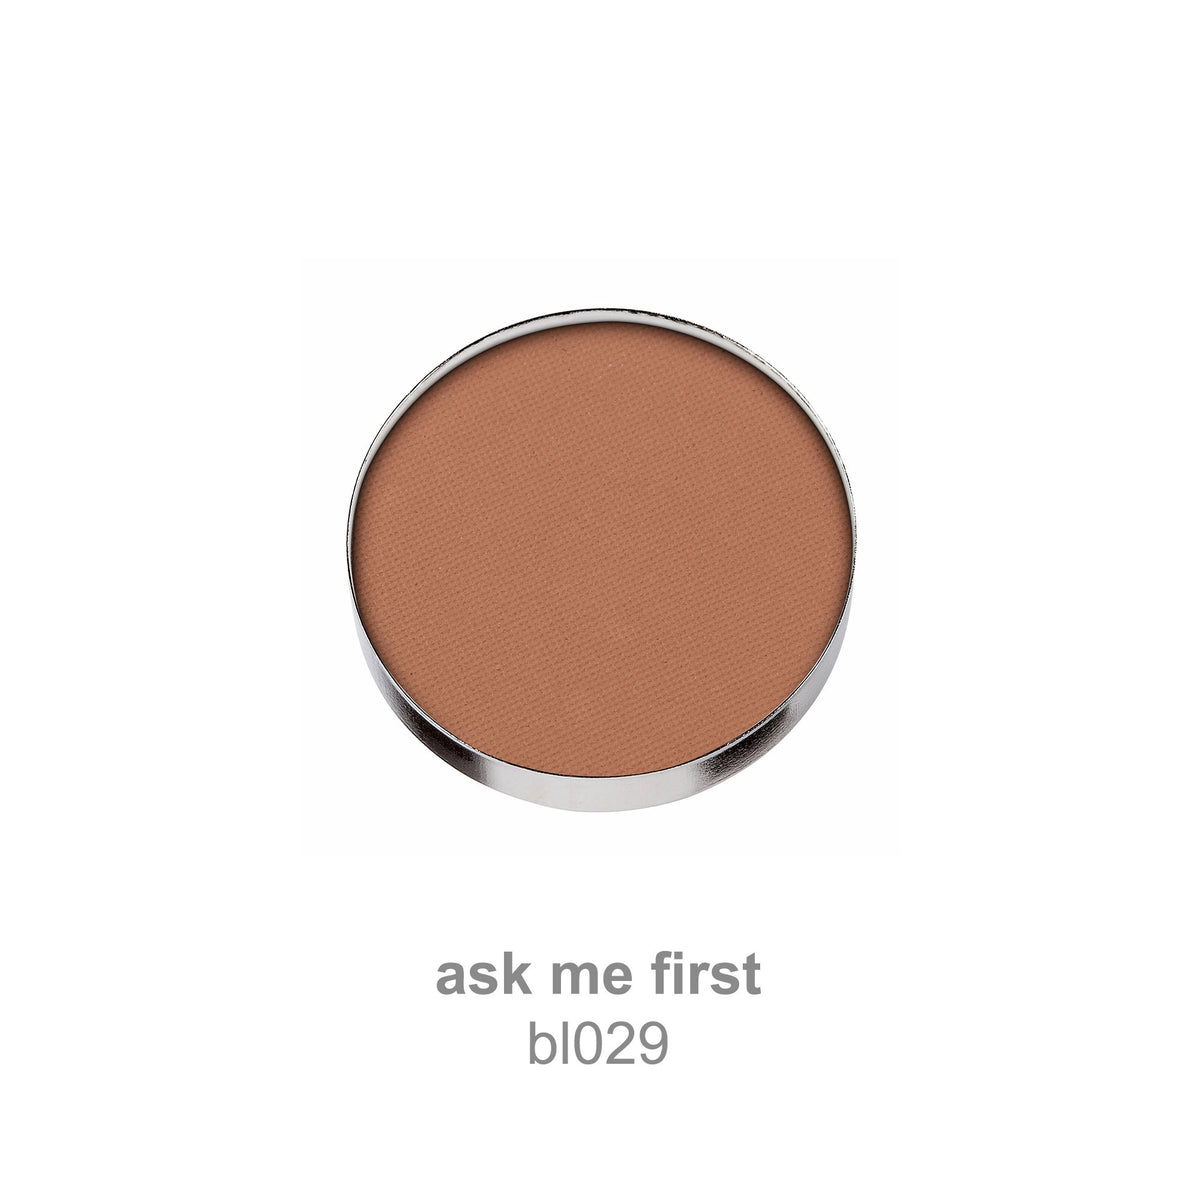 ask me first bl029